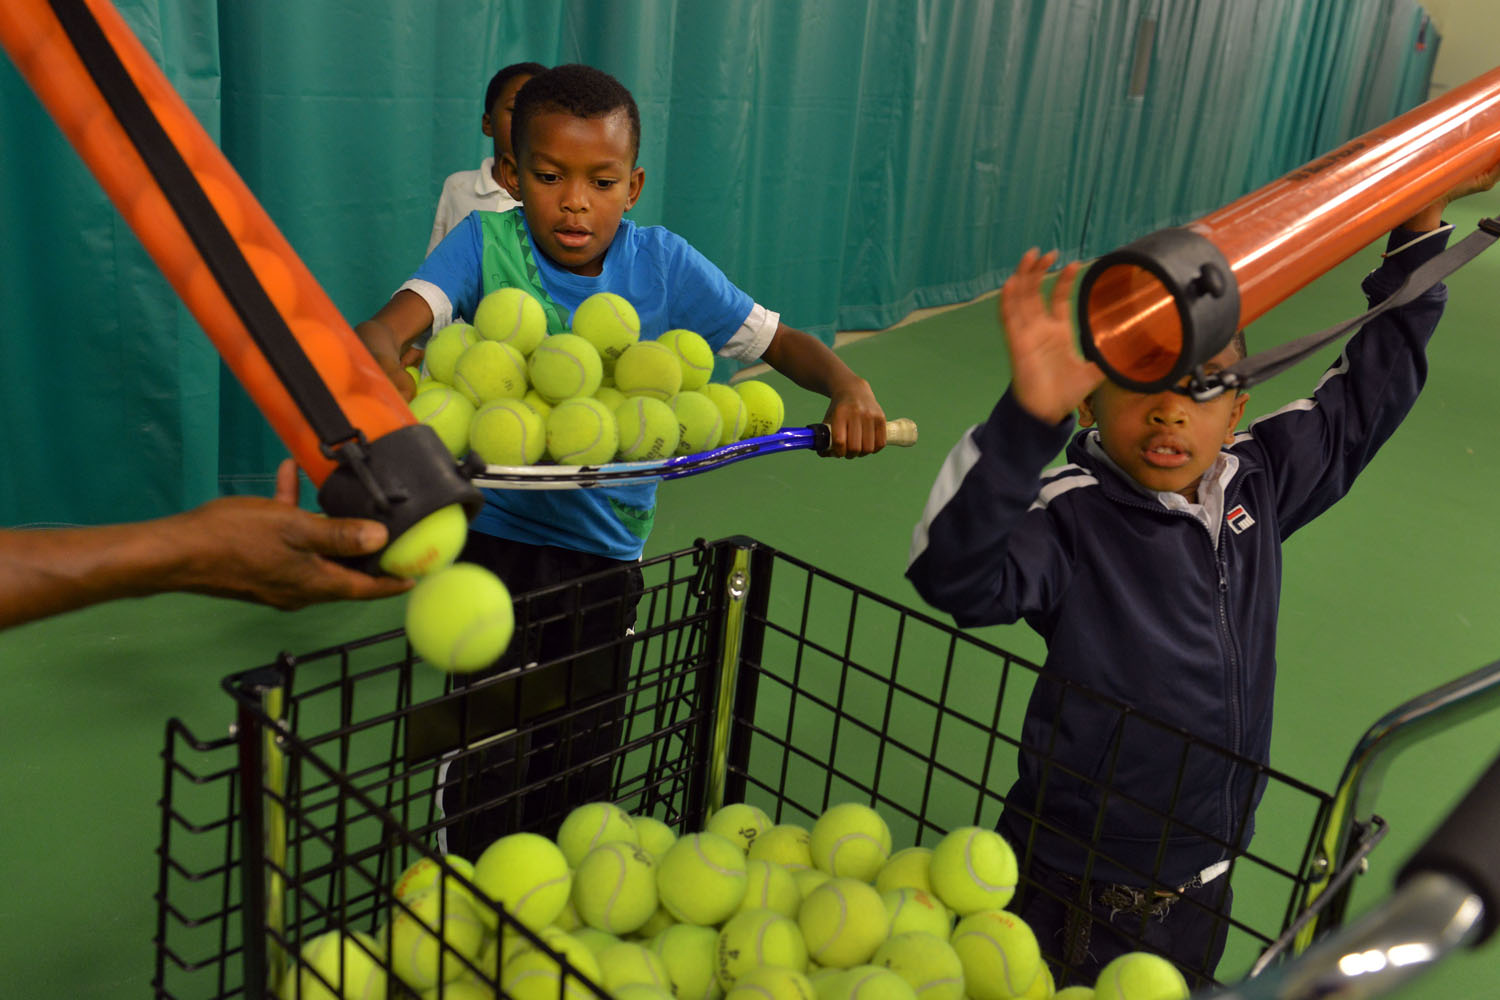 Tayon Richardson and Dexter Humphrey gather tennis balls between drills at the Washington Tennis & Education Foundation's new $10 million Southeast DC tennis and learning center on Thursday, June 6, 2013, in Washington, DC.